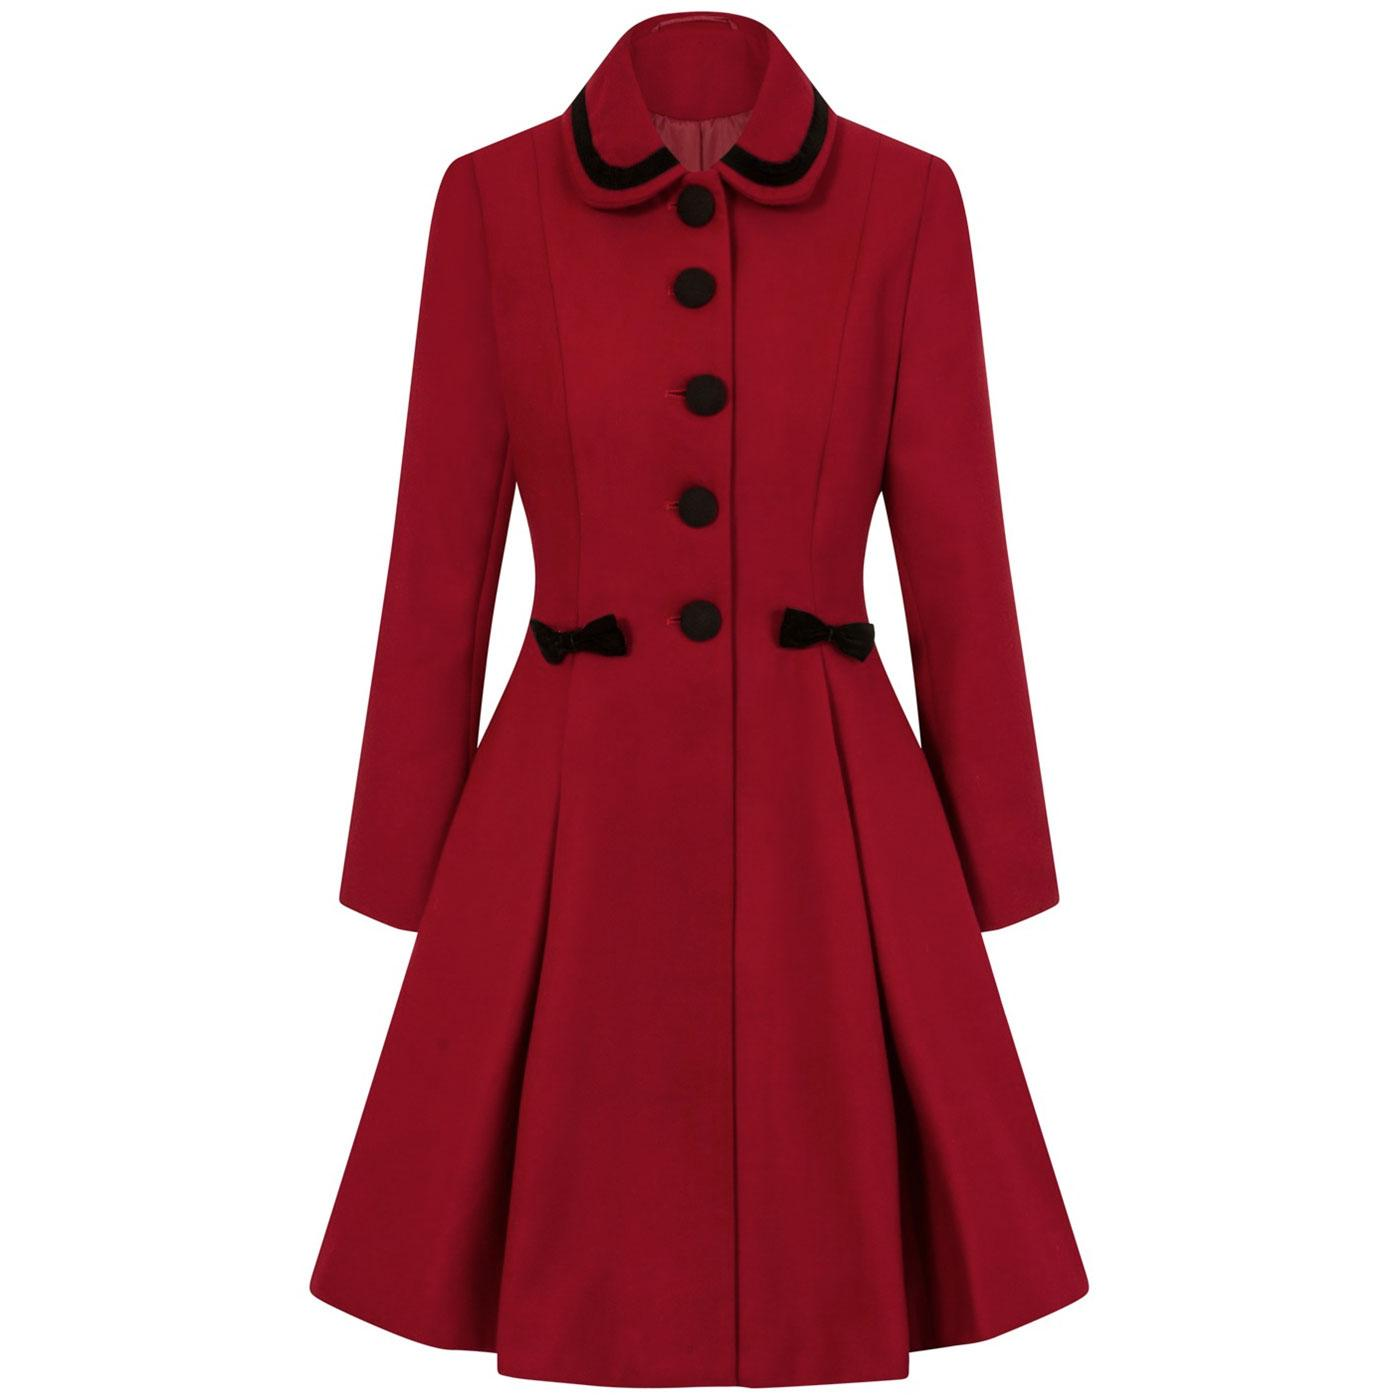 Olivia HELL BUNNY Vintage 1950s Bow Coat Red